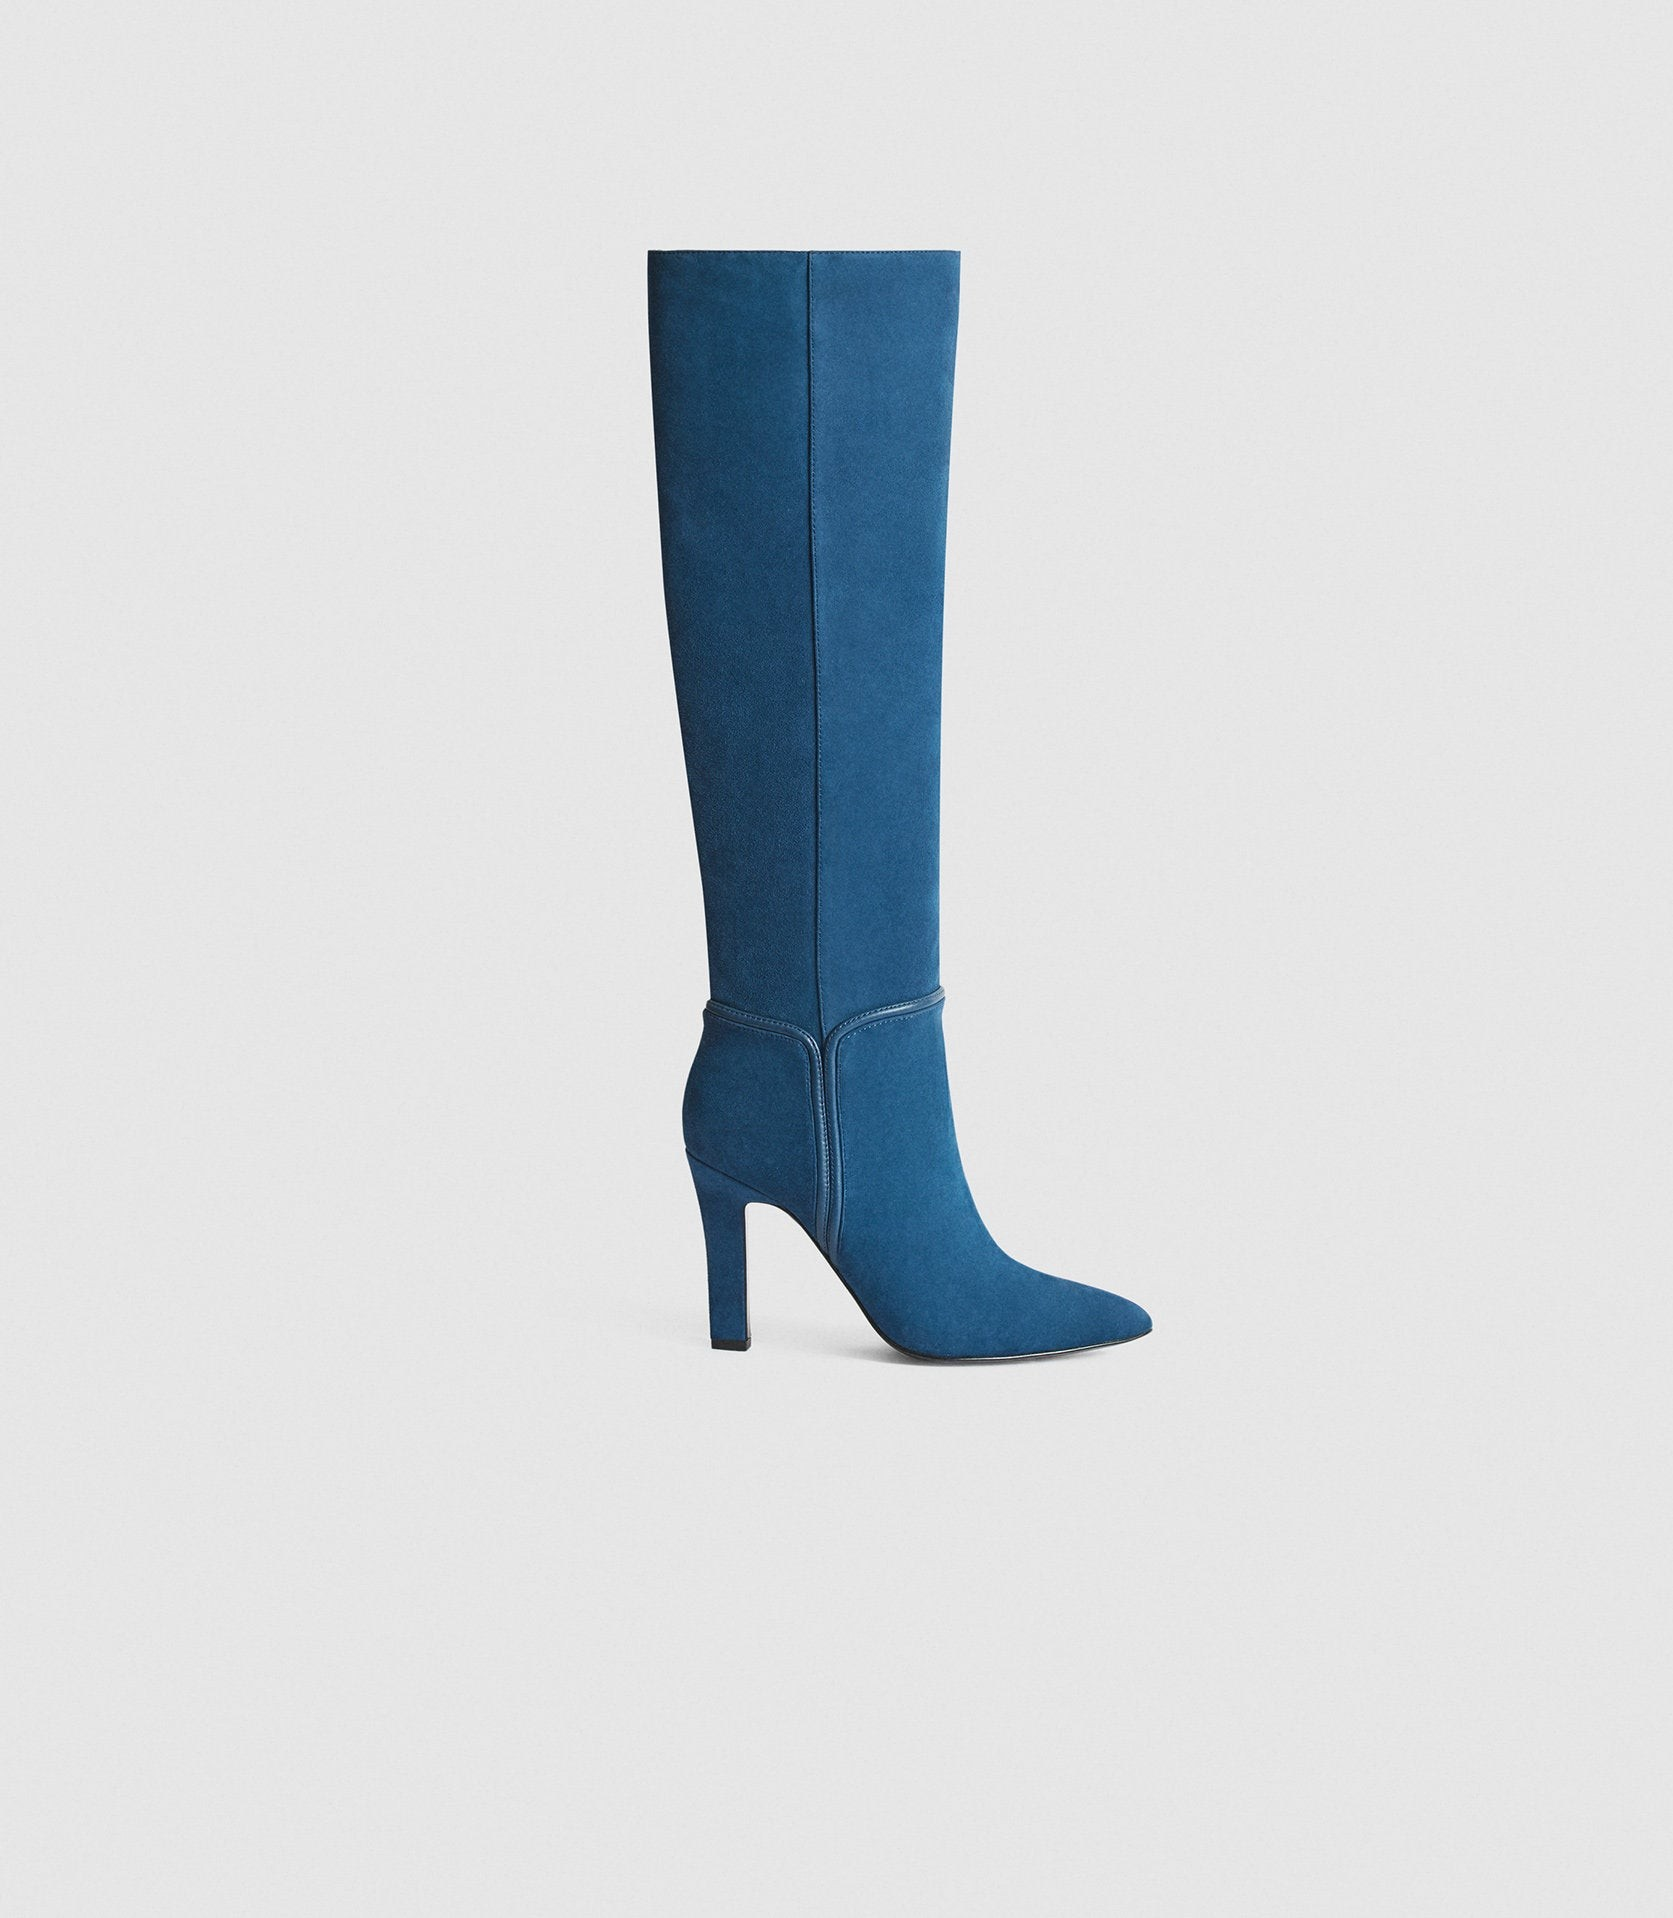 Reiss Eline - Suede Blue, Womens, Size 3 Knee High Boots